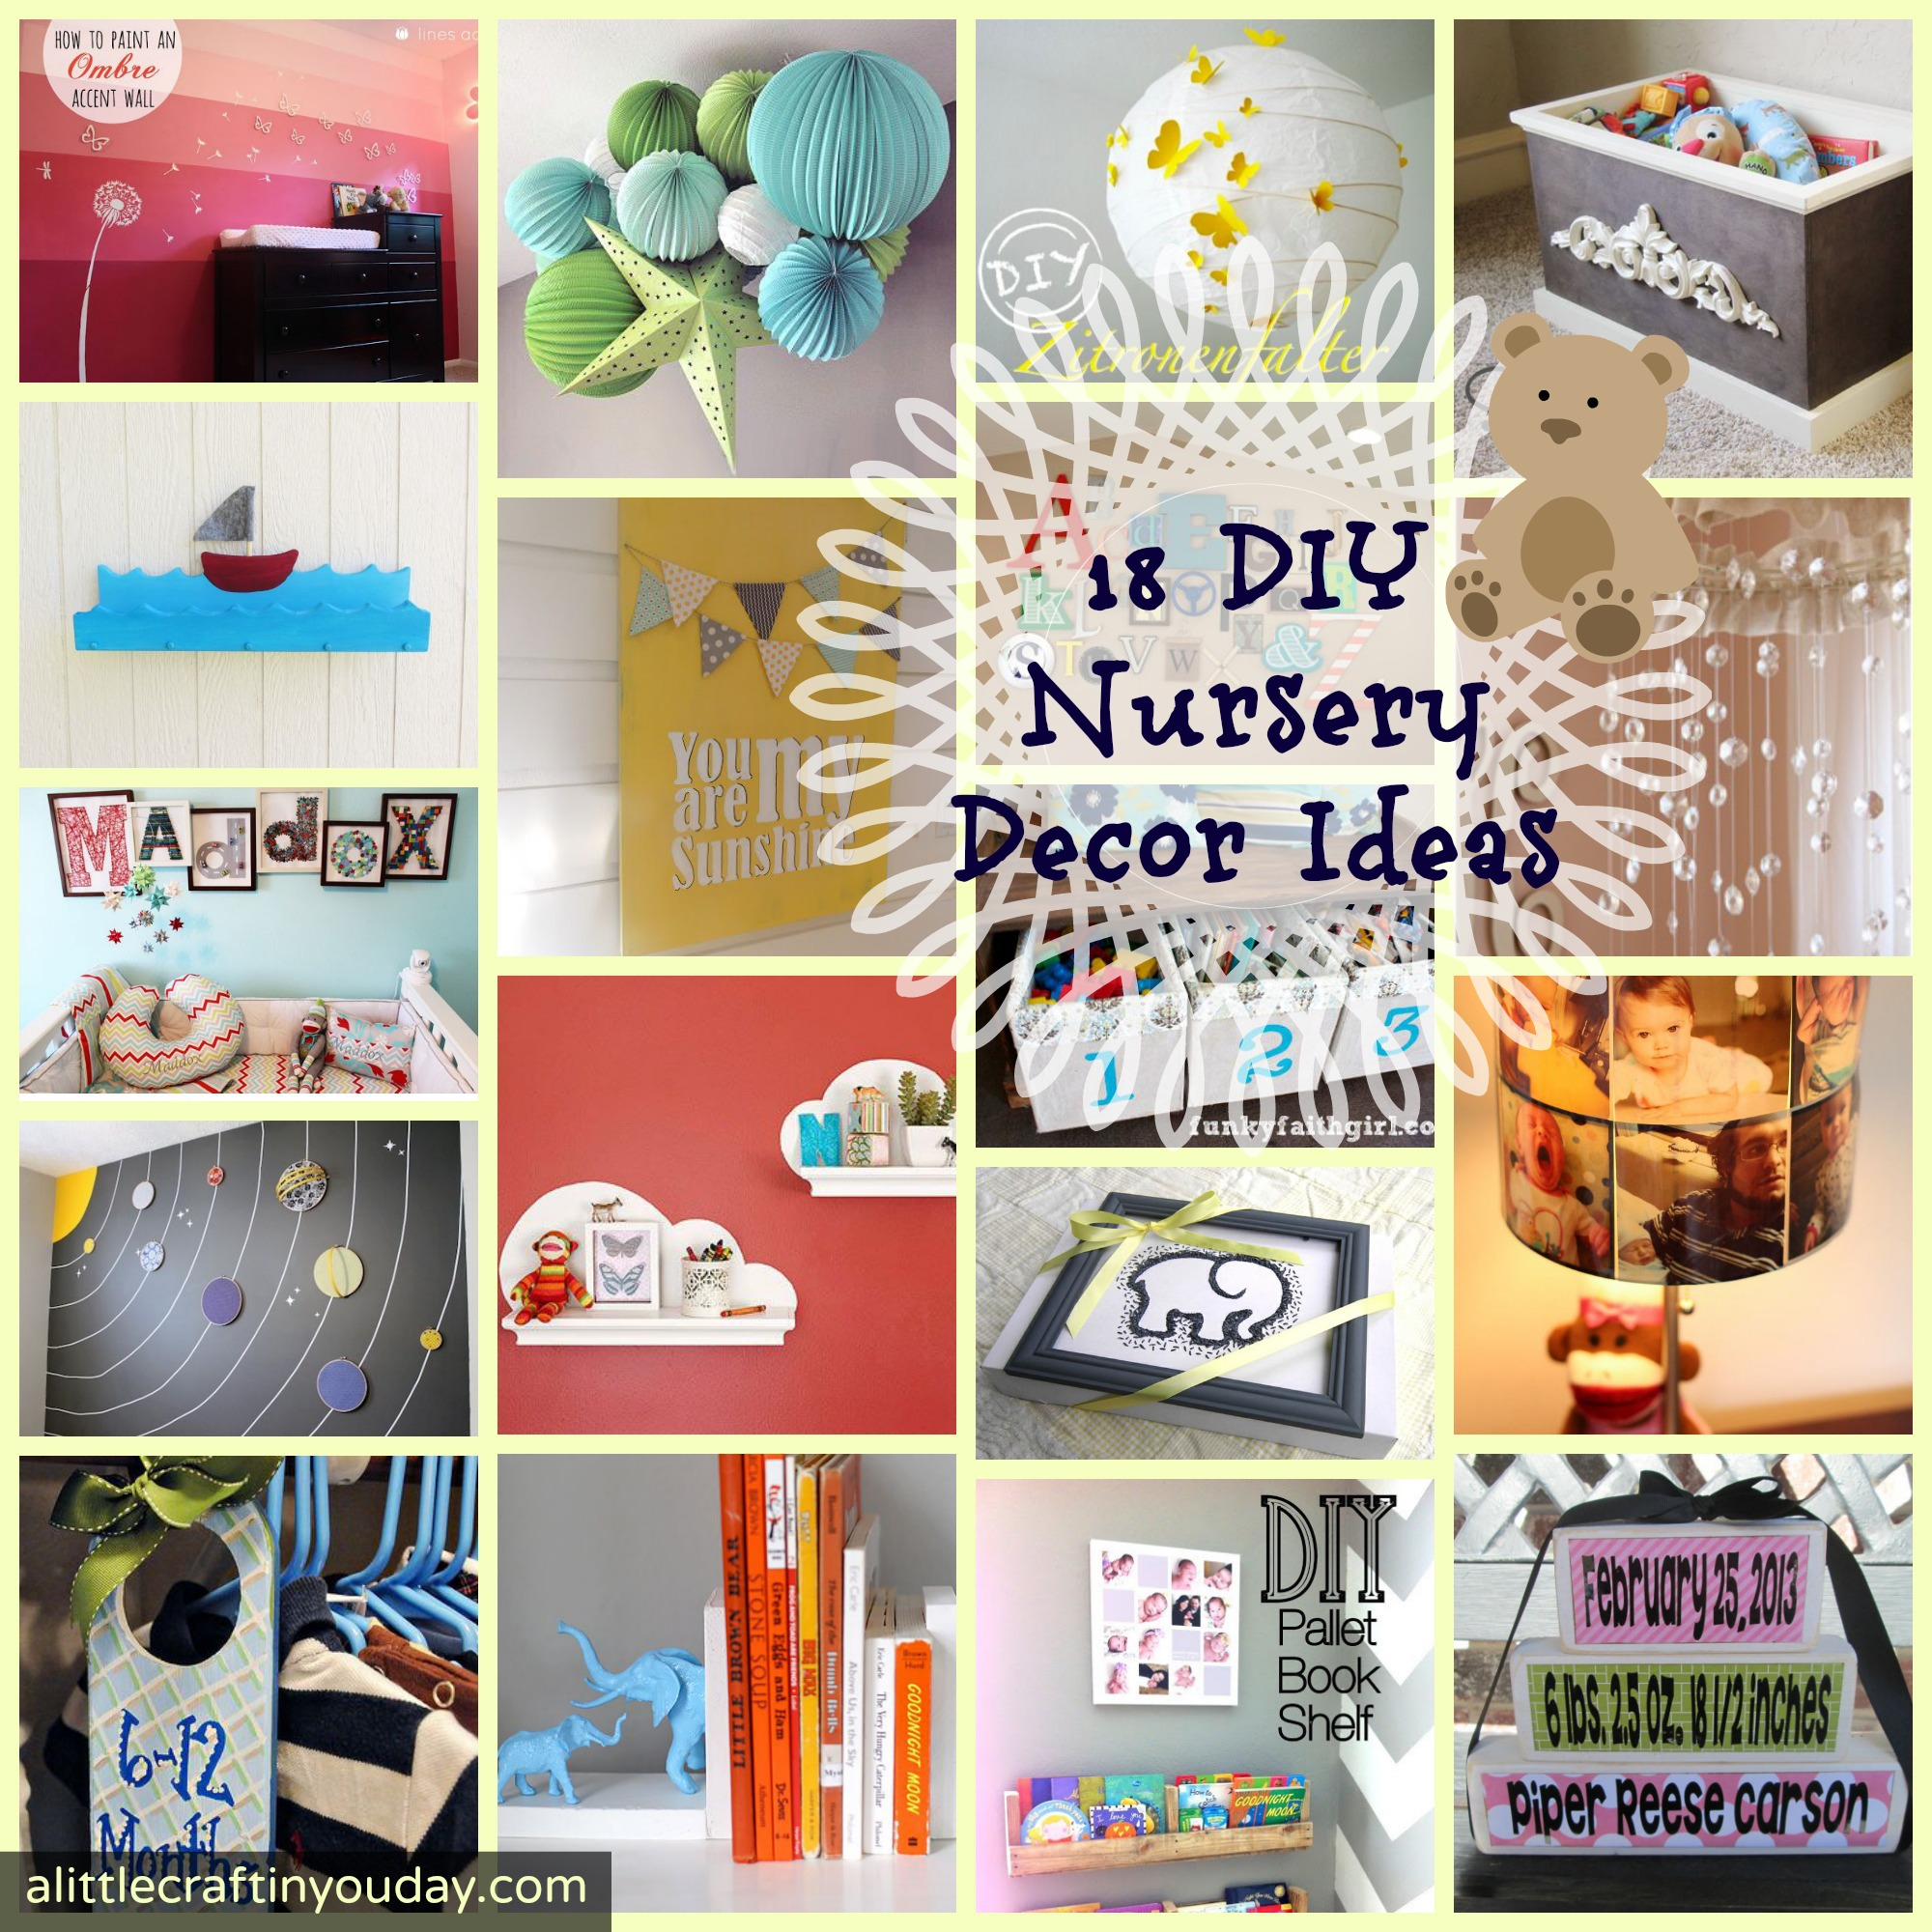 18 Diy Nursery Decor Ideas A Little Craft In Your Day